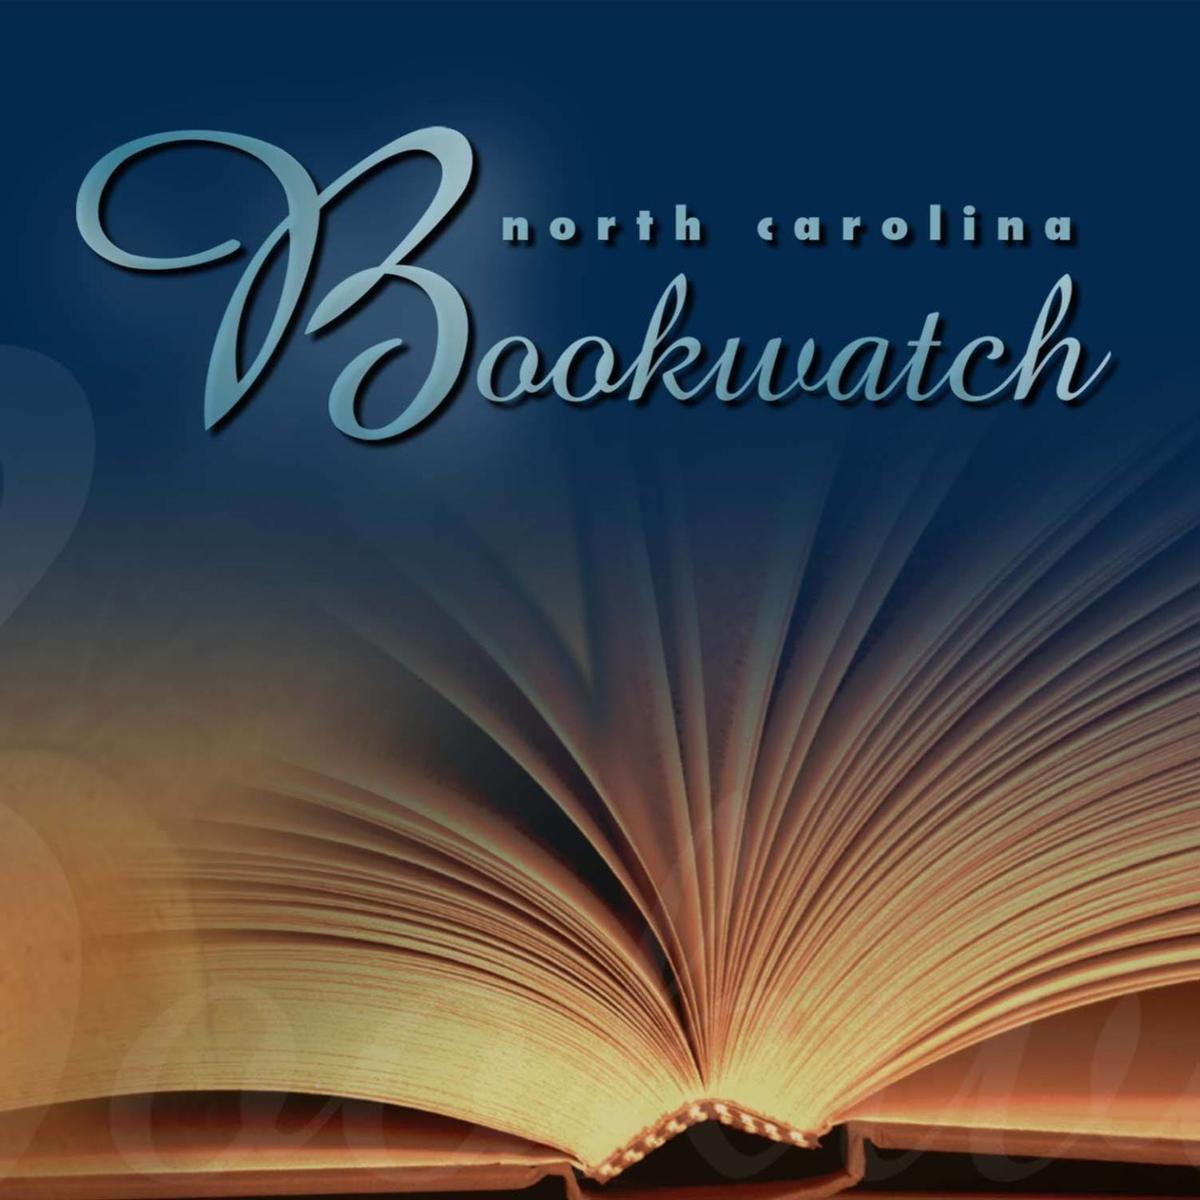 Bookwatch logo